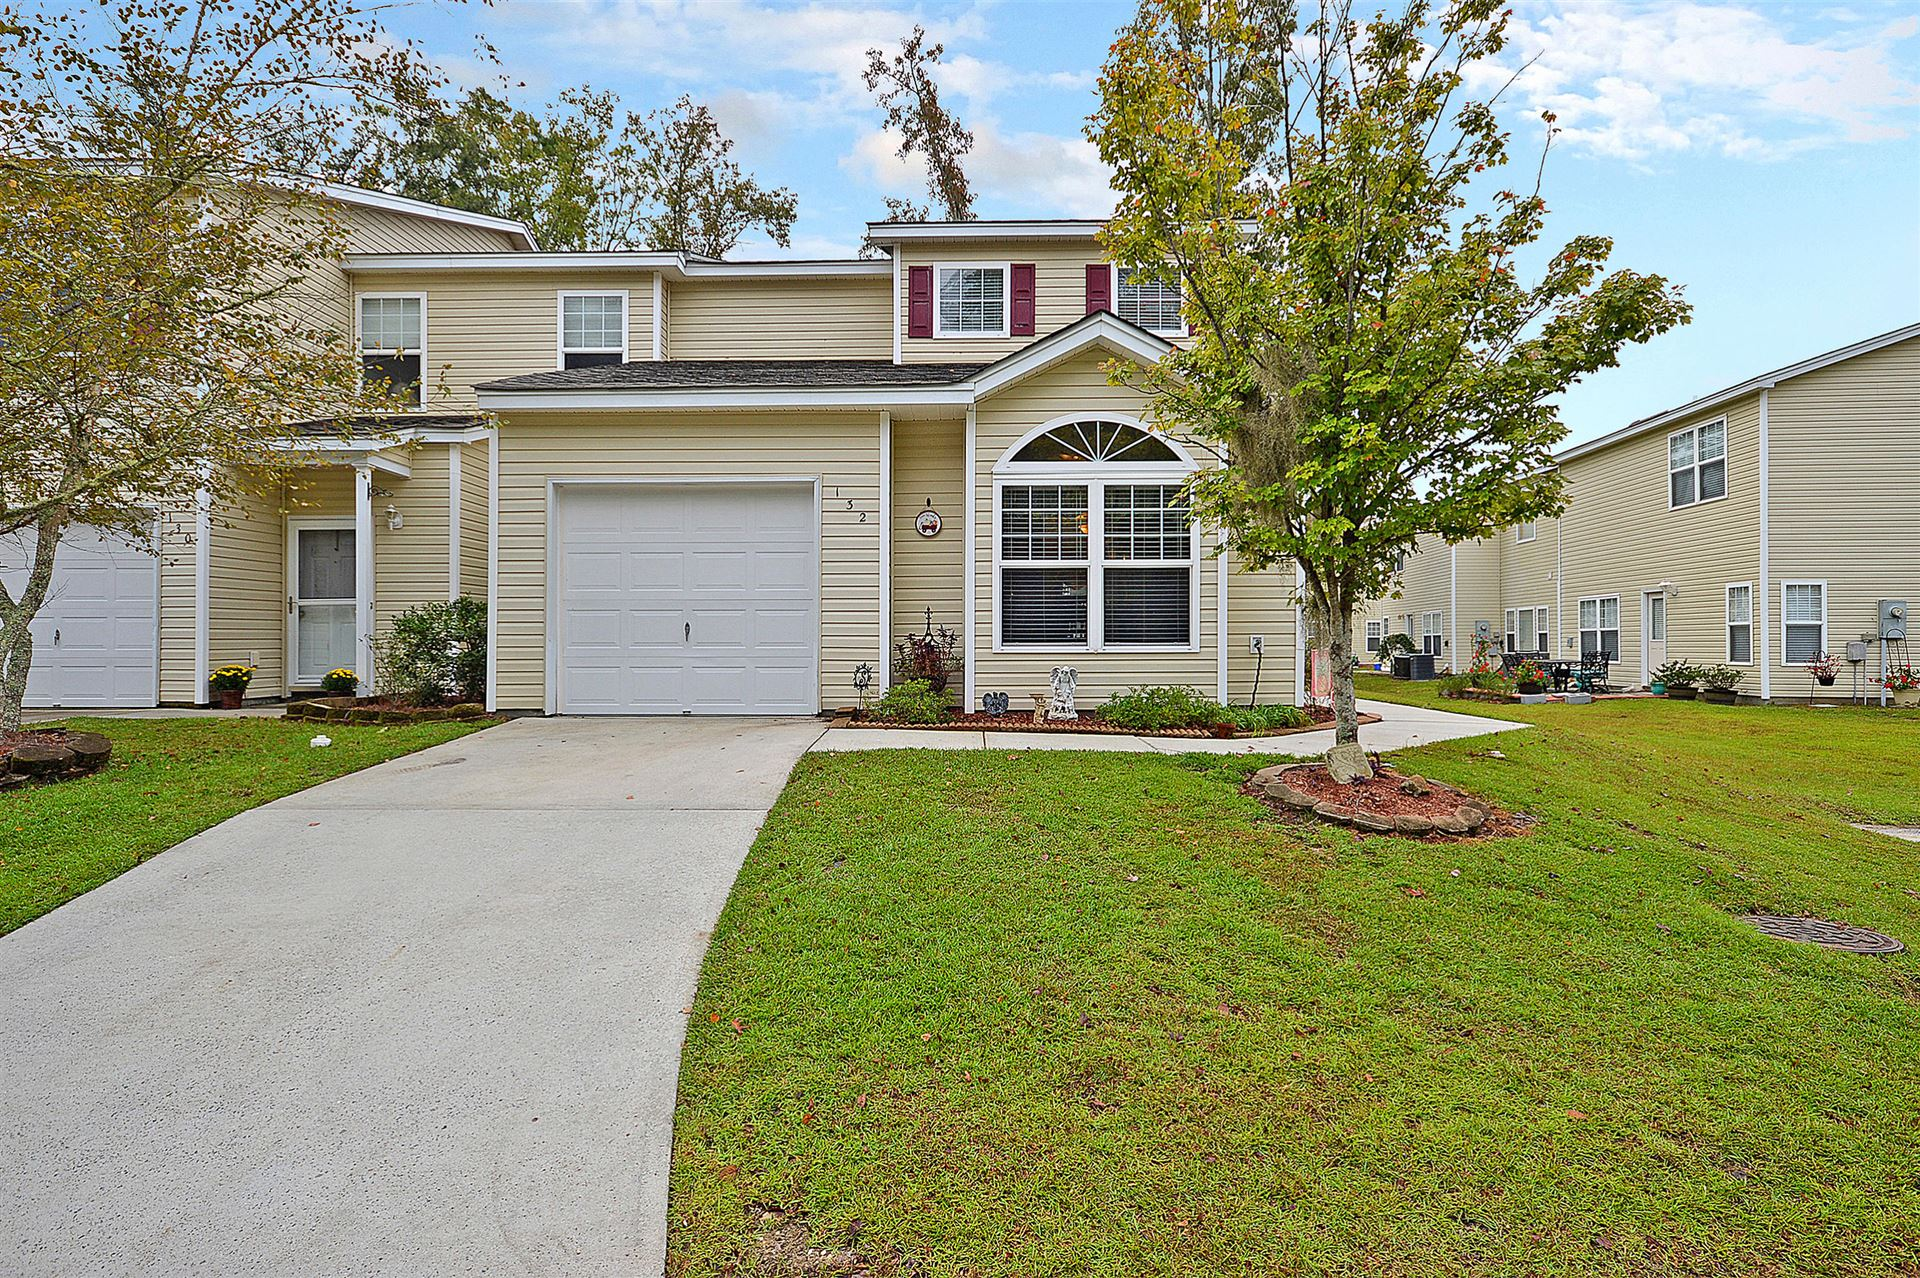 Photo of 132 Grand Oaks Drive, Ladson, SC 29456 (MLS # 20029344)